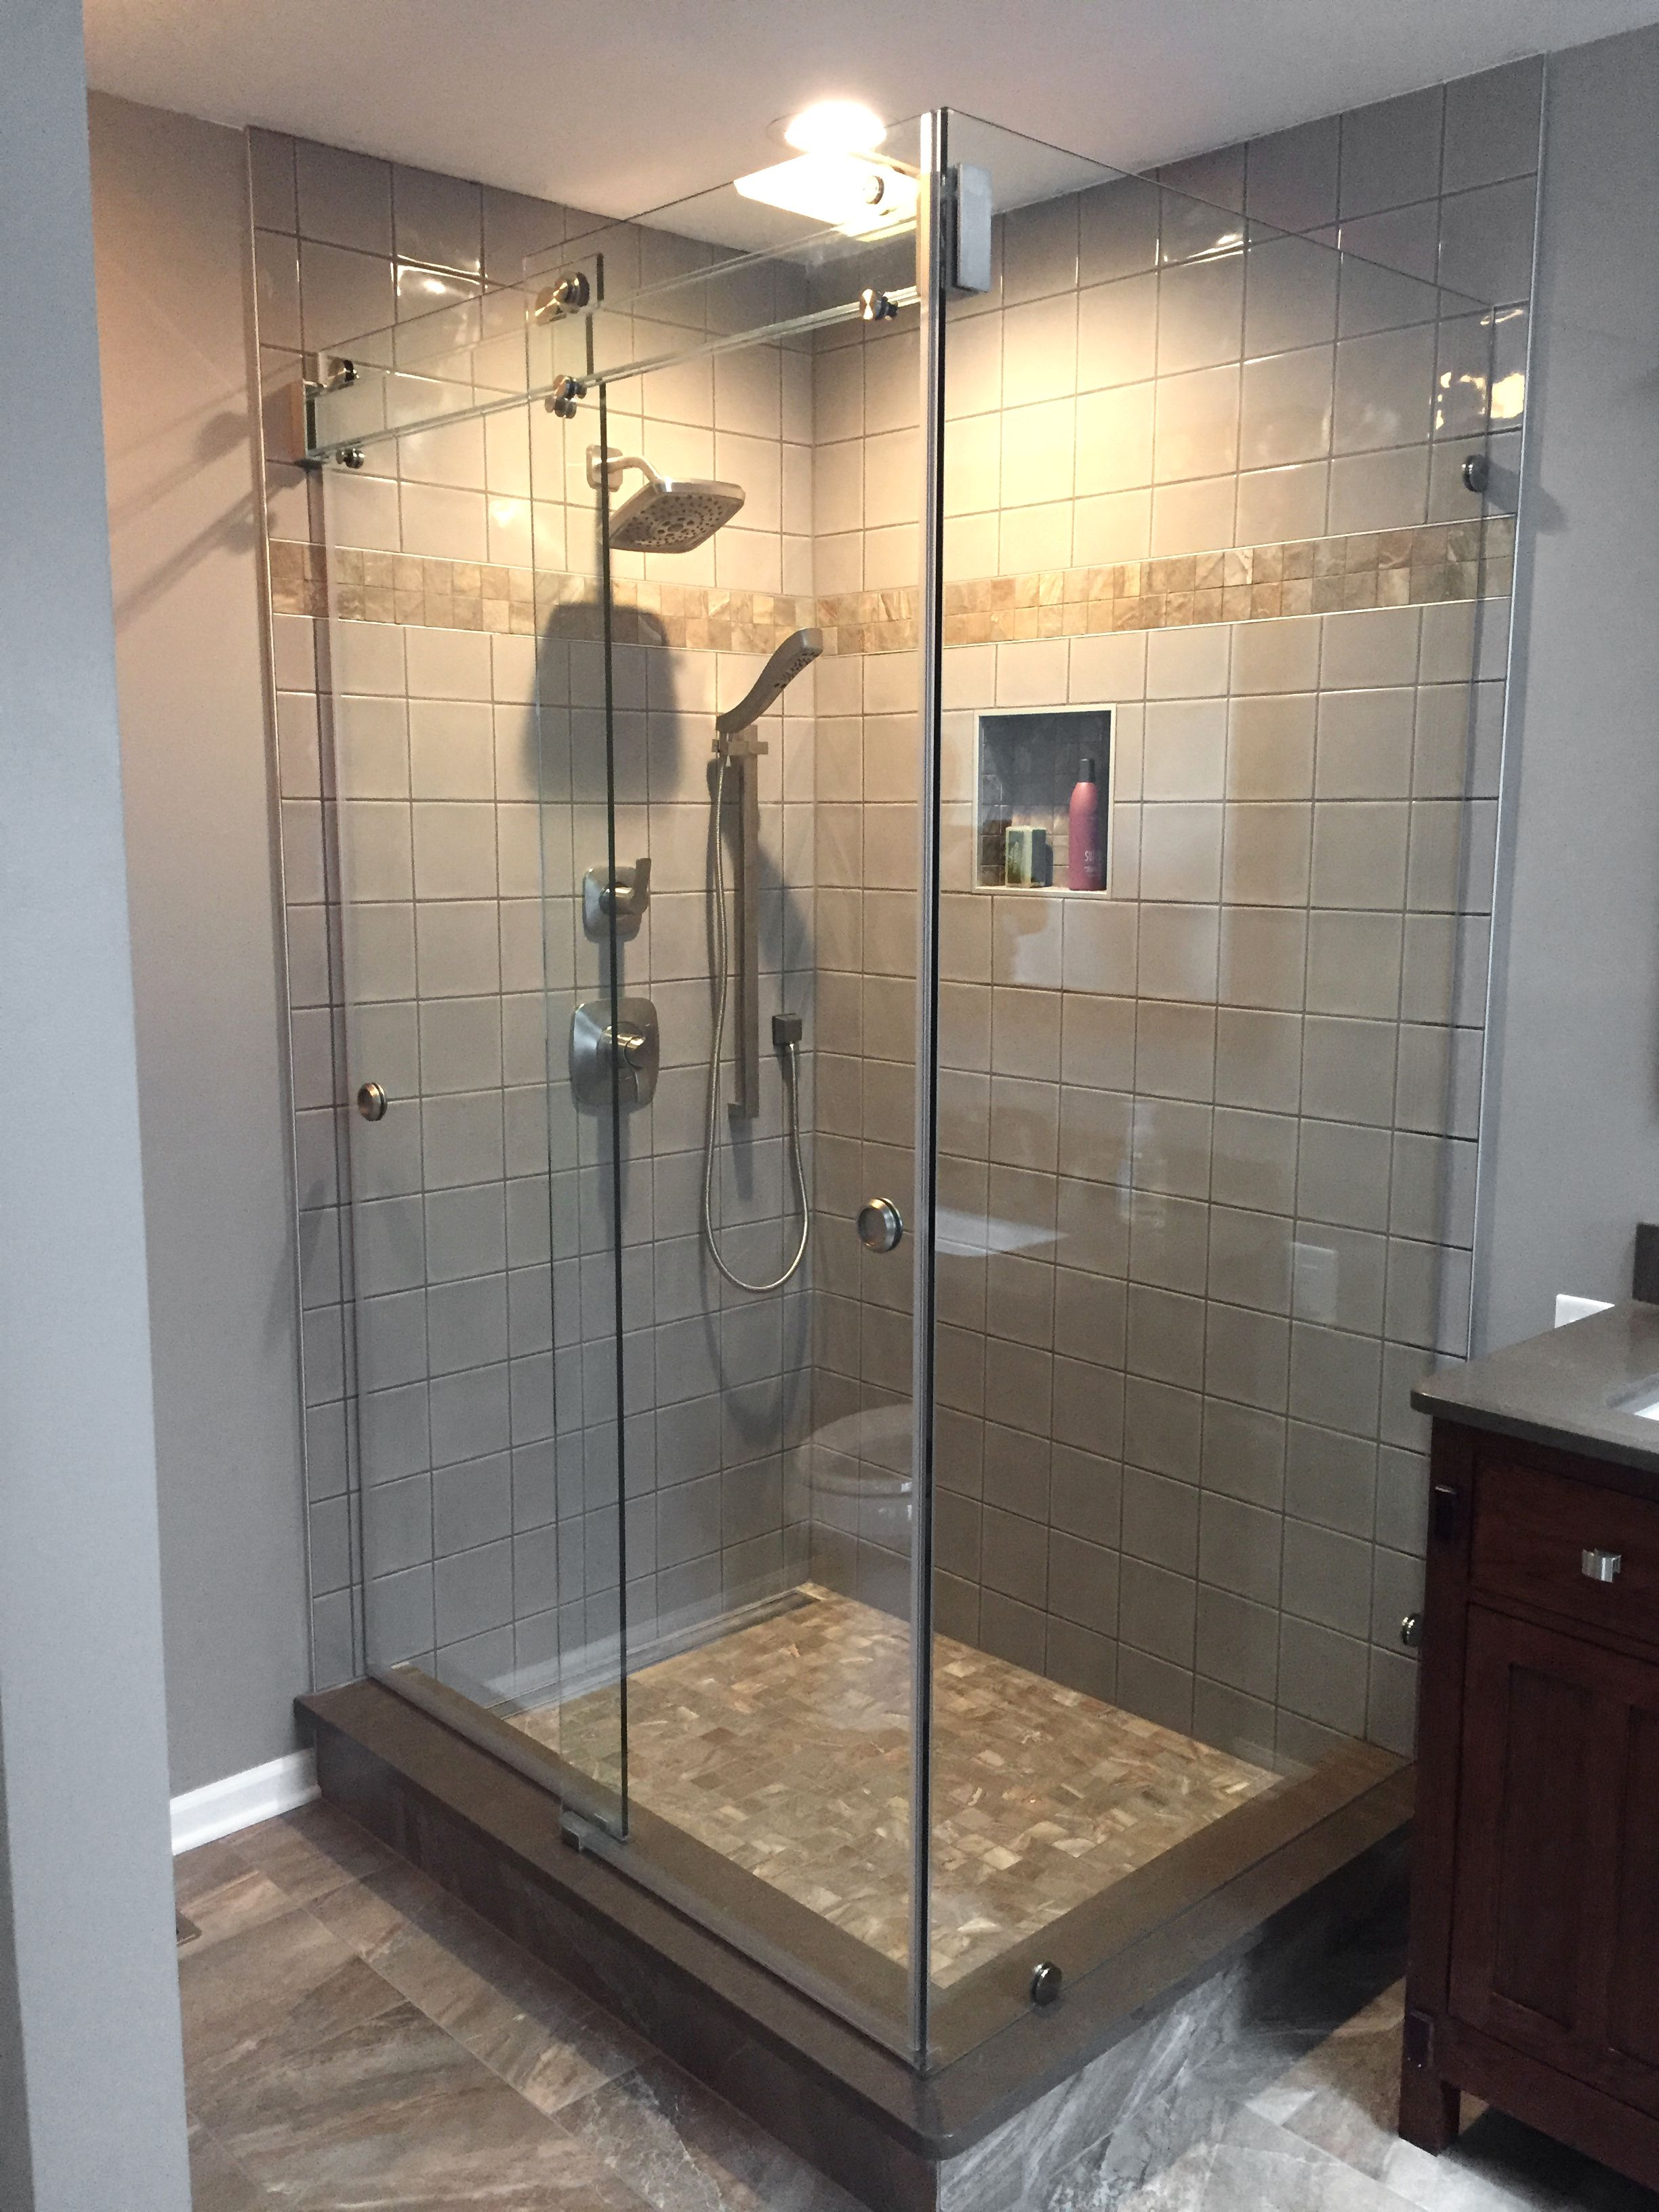 Barn Door Style Shower Enclosure All Glass Glass Shower Doors Shower Doors Glass Shower